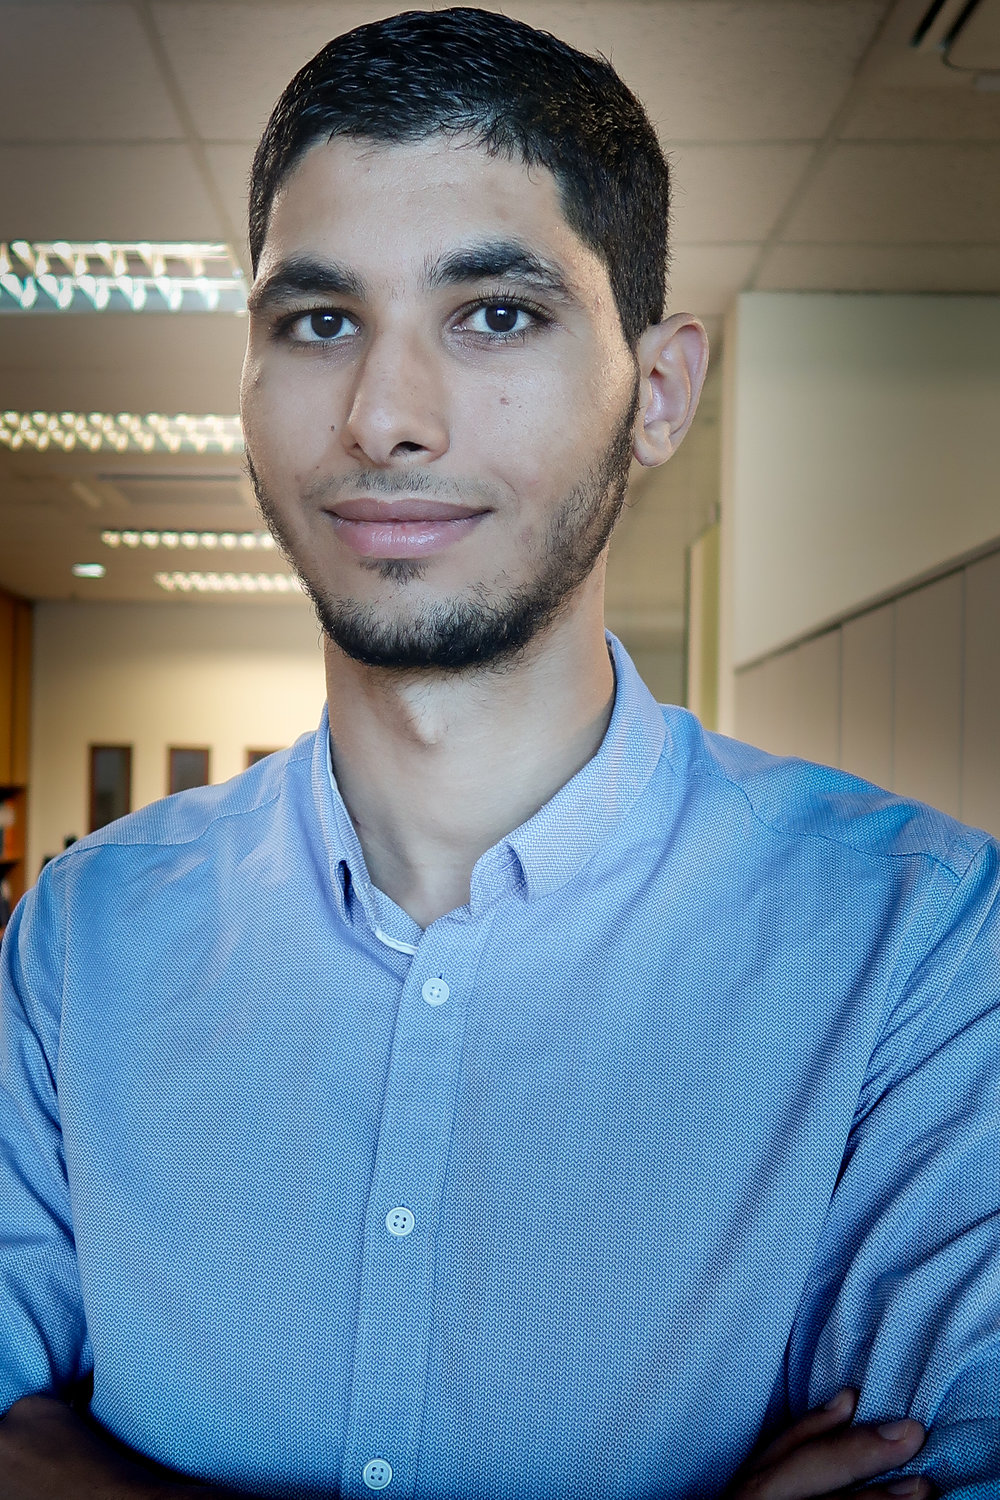 Abdel Rahmen Korichi - SingaporeData Scientist at Panalyt, Abdel-Rahmen is in charge of Machine Learning and Data Analysis.He studied in France at the Université Claude Bernard and was previously Data Scientist at Locarise (Tokyo).